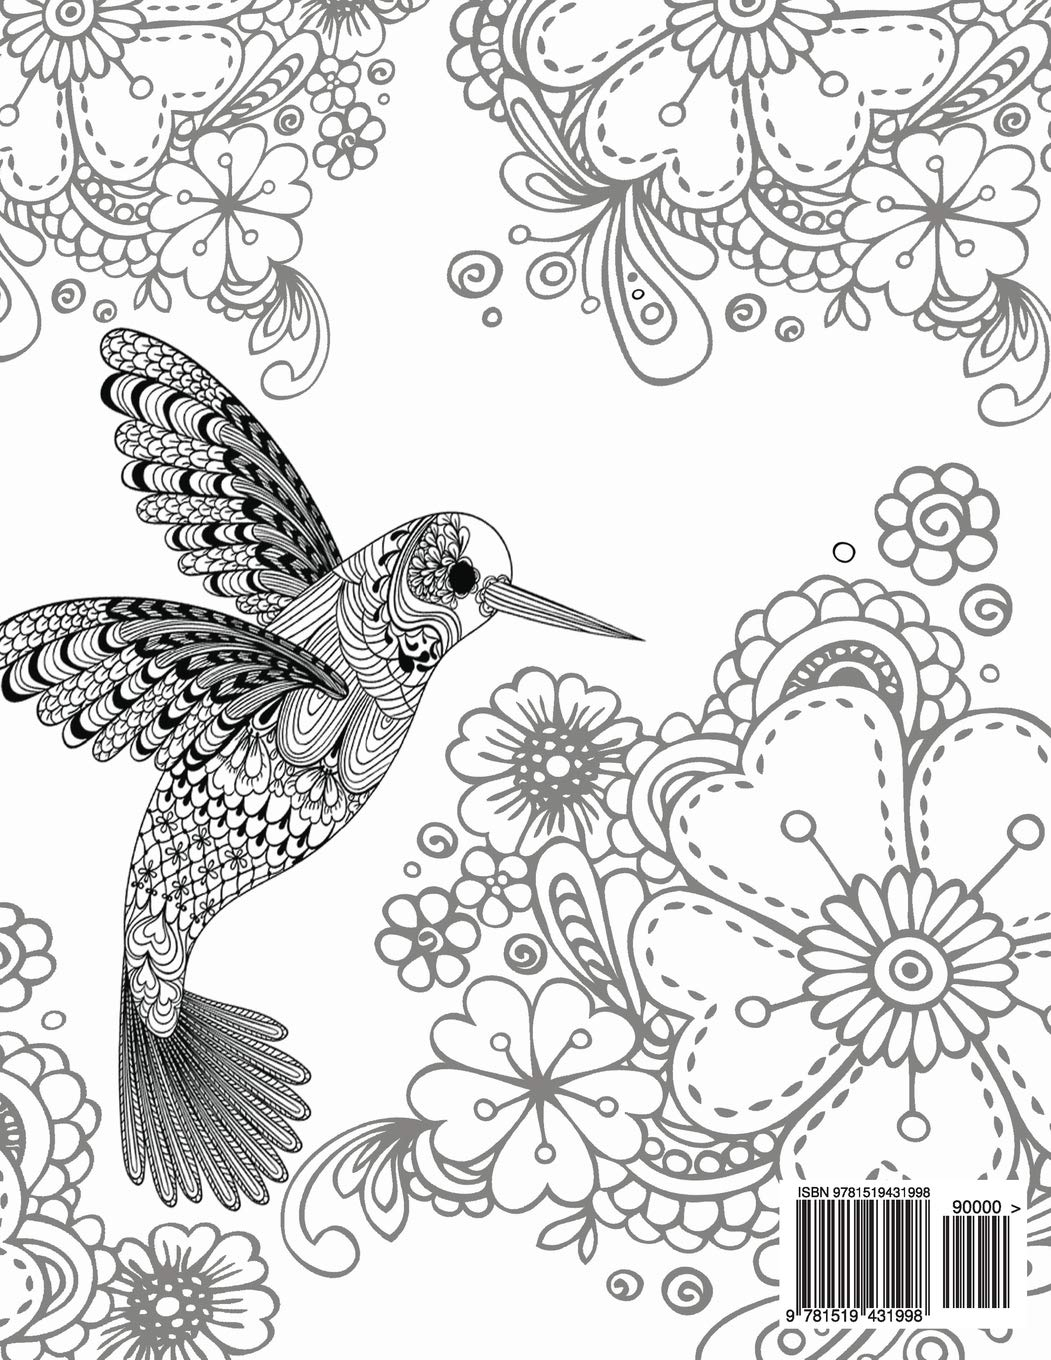 - Amazon.com: Birds Coloring Book For Adults (The Stress Relieving